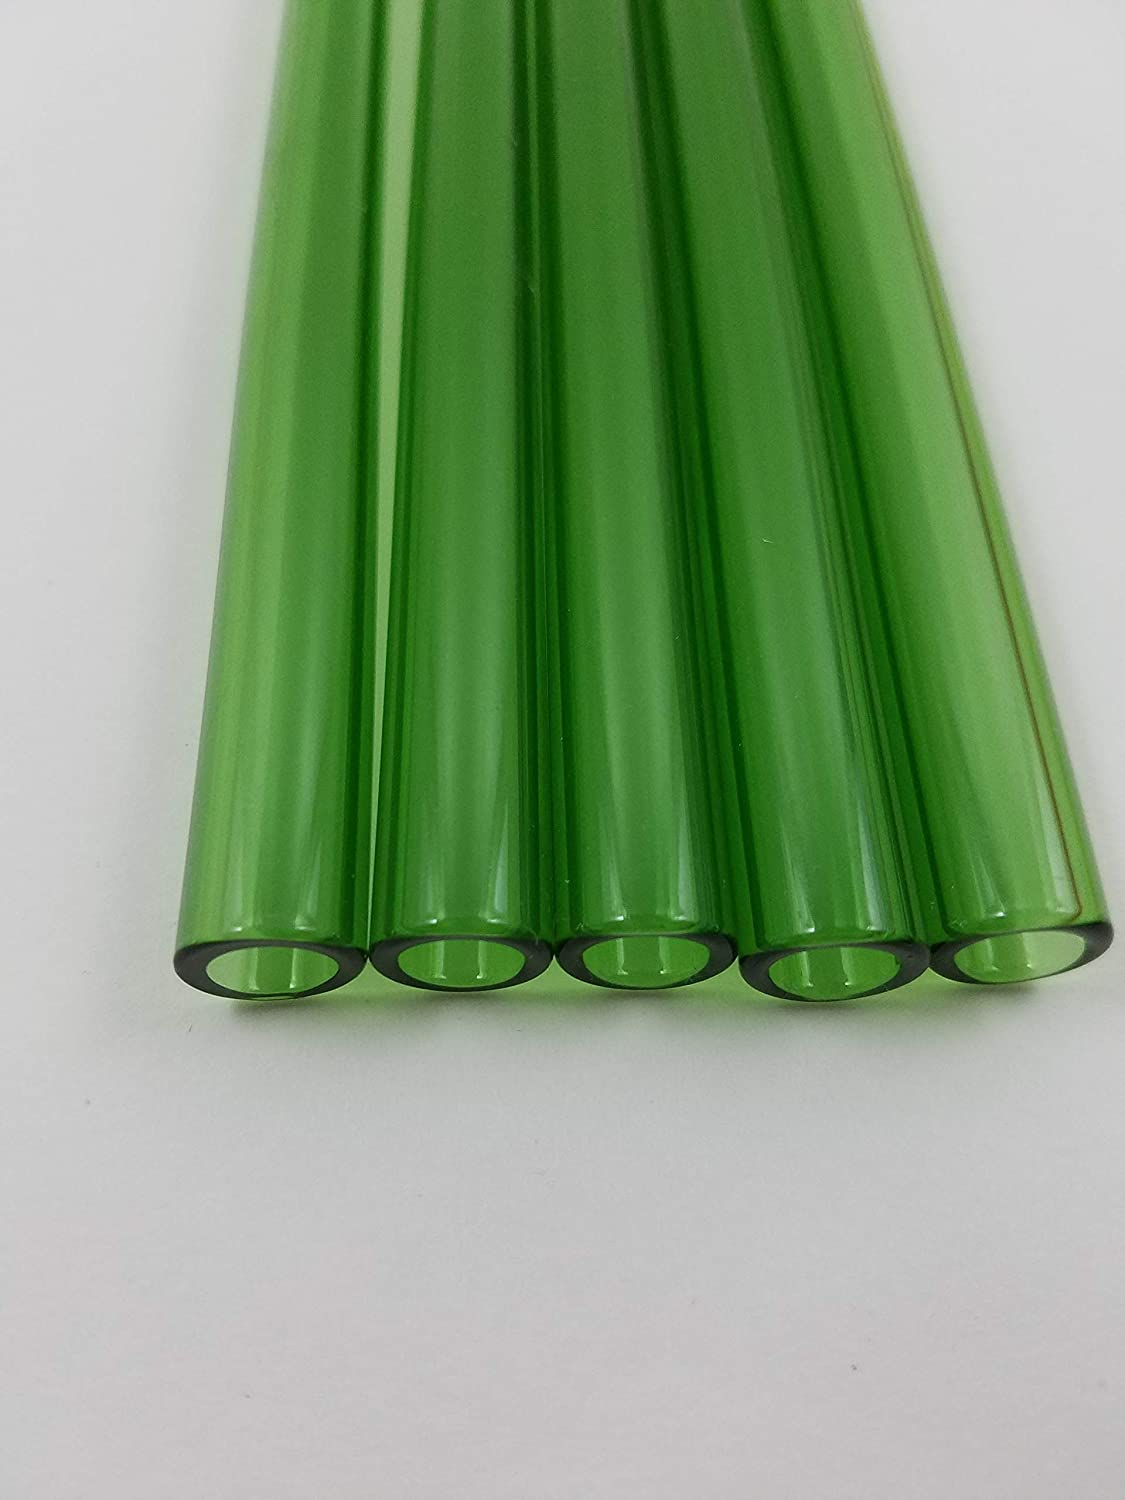 Borosilicate Glass Blowing Tubing Green Tubes 6 inch 5 Piece 12 mm OD Thick Wall Boro Glass Coe 33